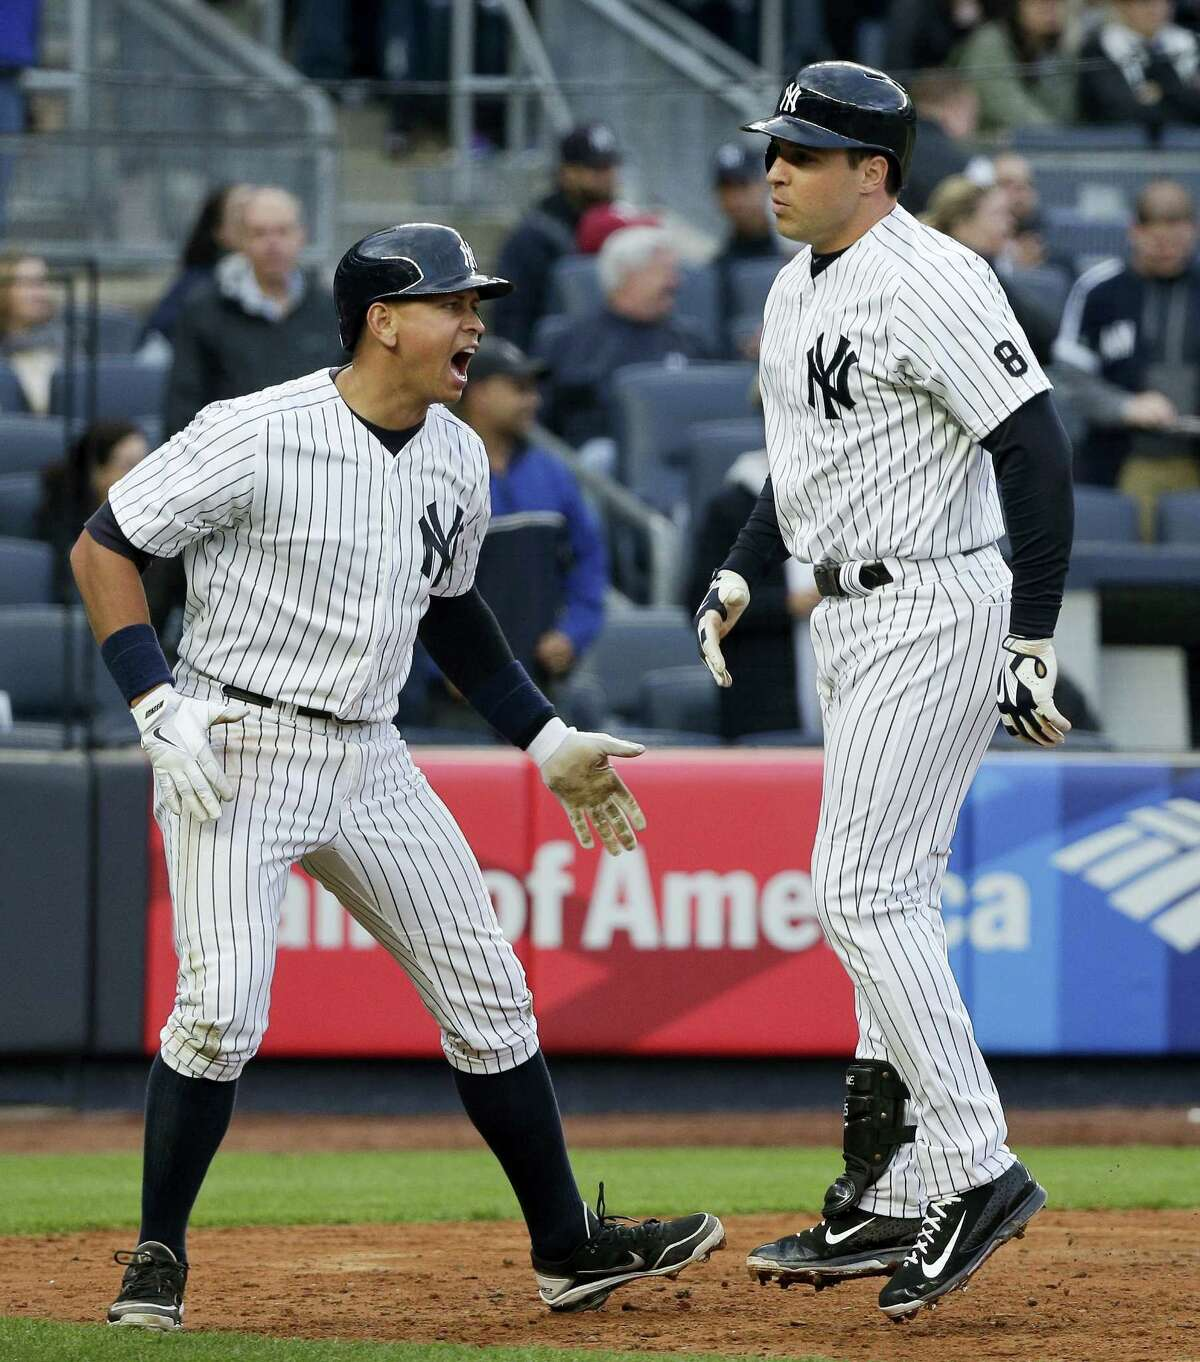 Mark Teixeira, right, is greeted by Alex Rodriguez after hitting a home run against the Astros on Thursday.